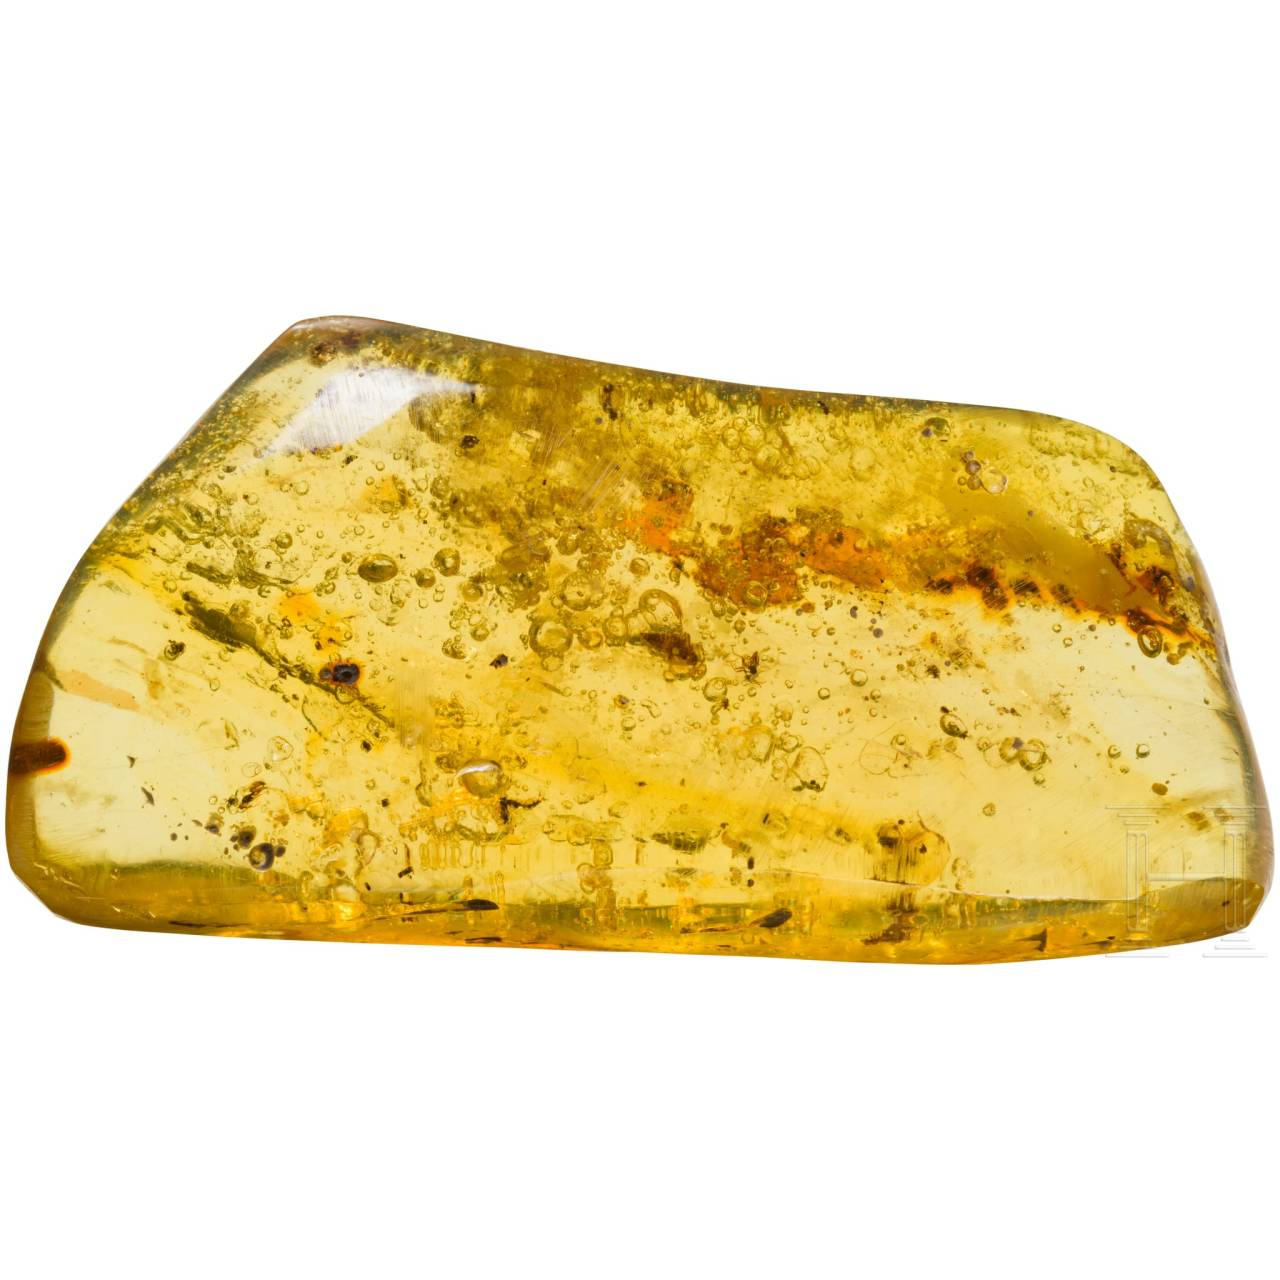 A large piece of amber with inclusions